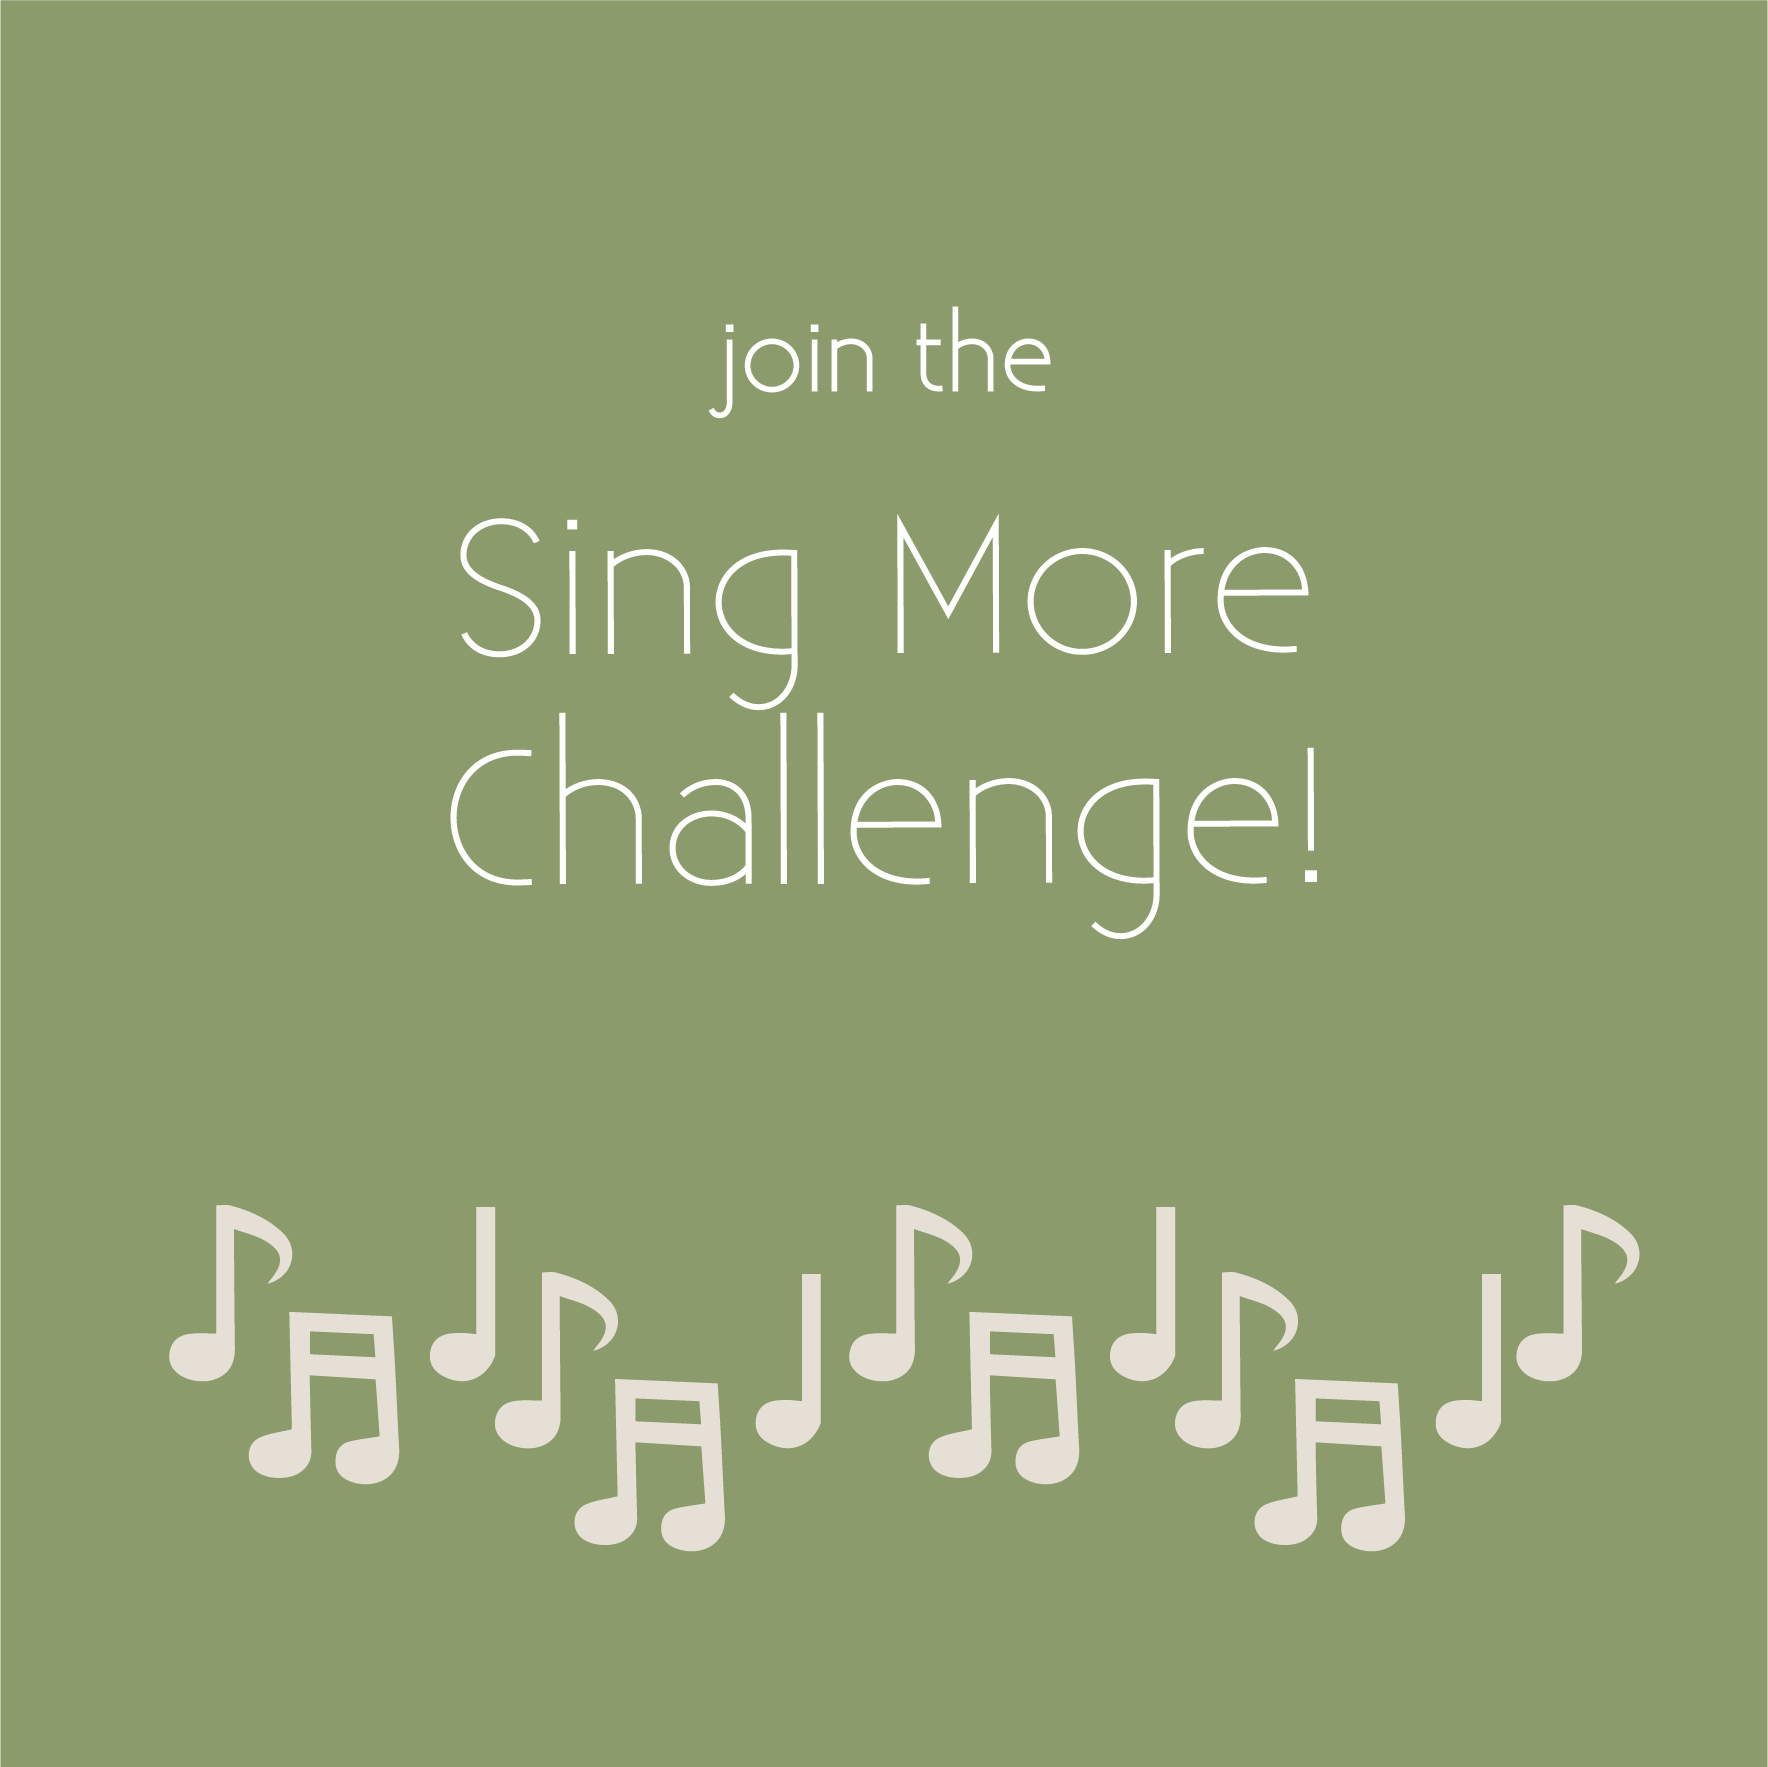 sing-more-challenge.png